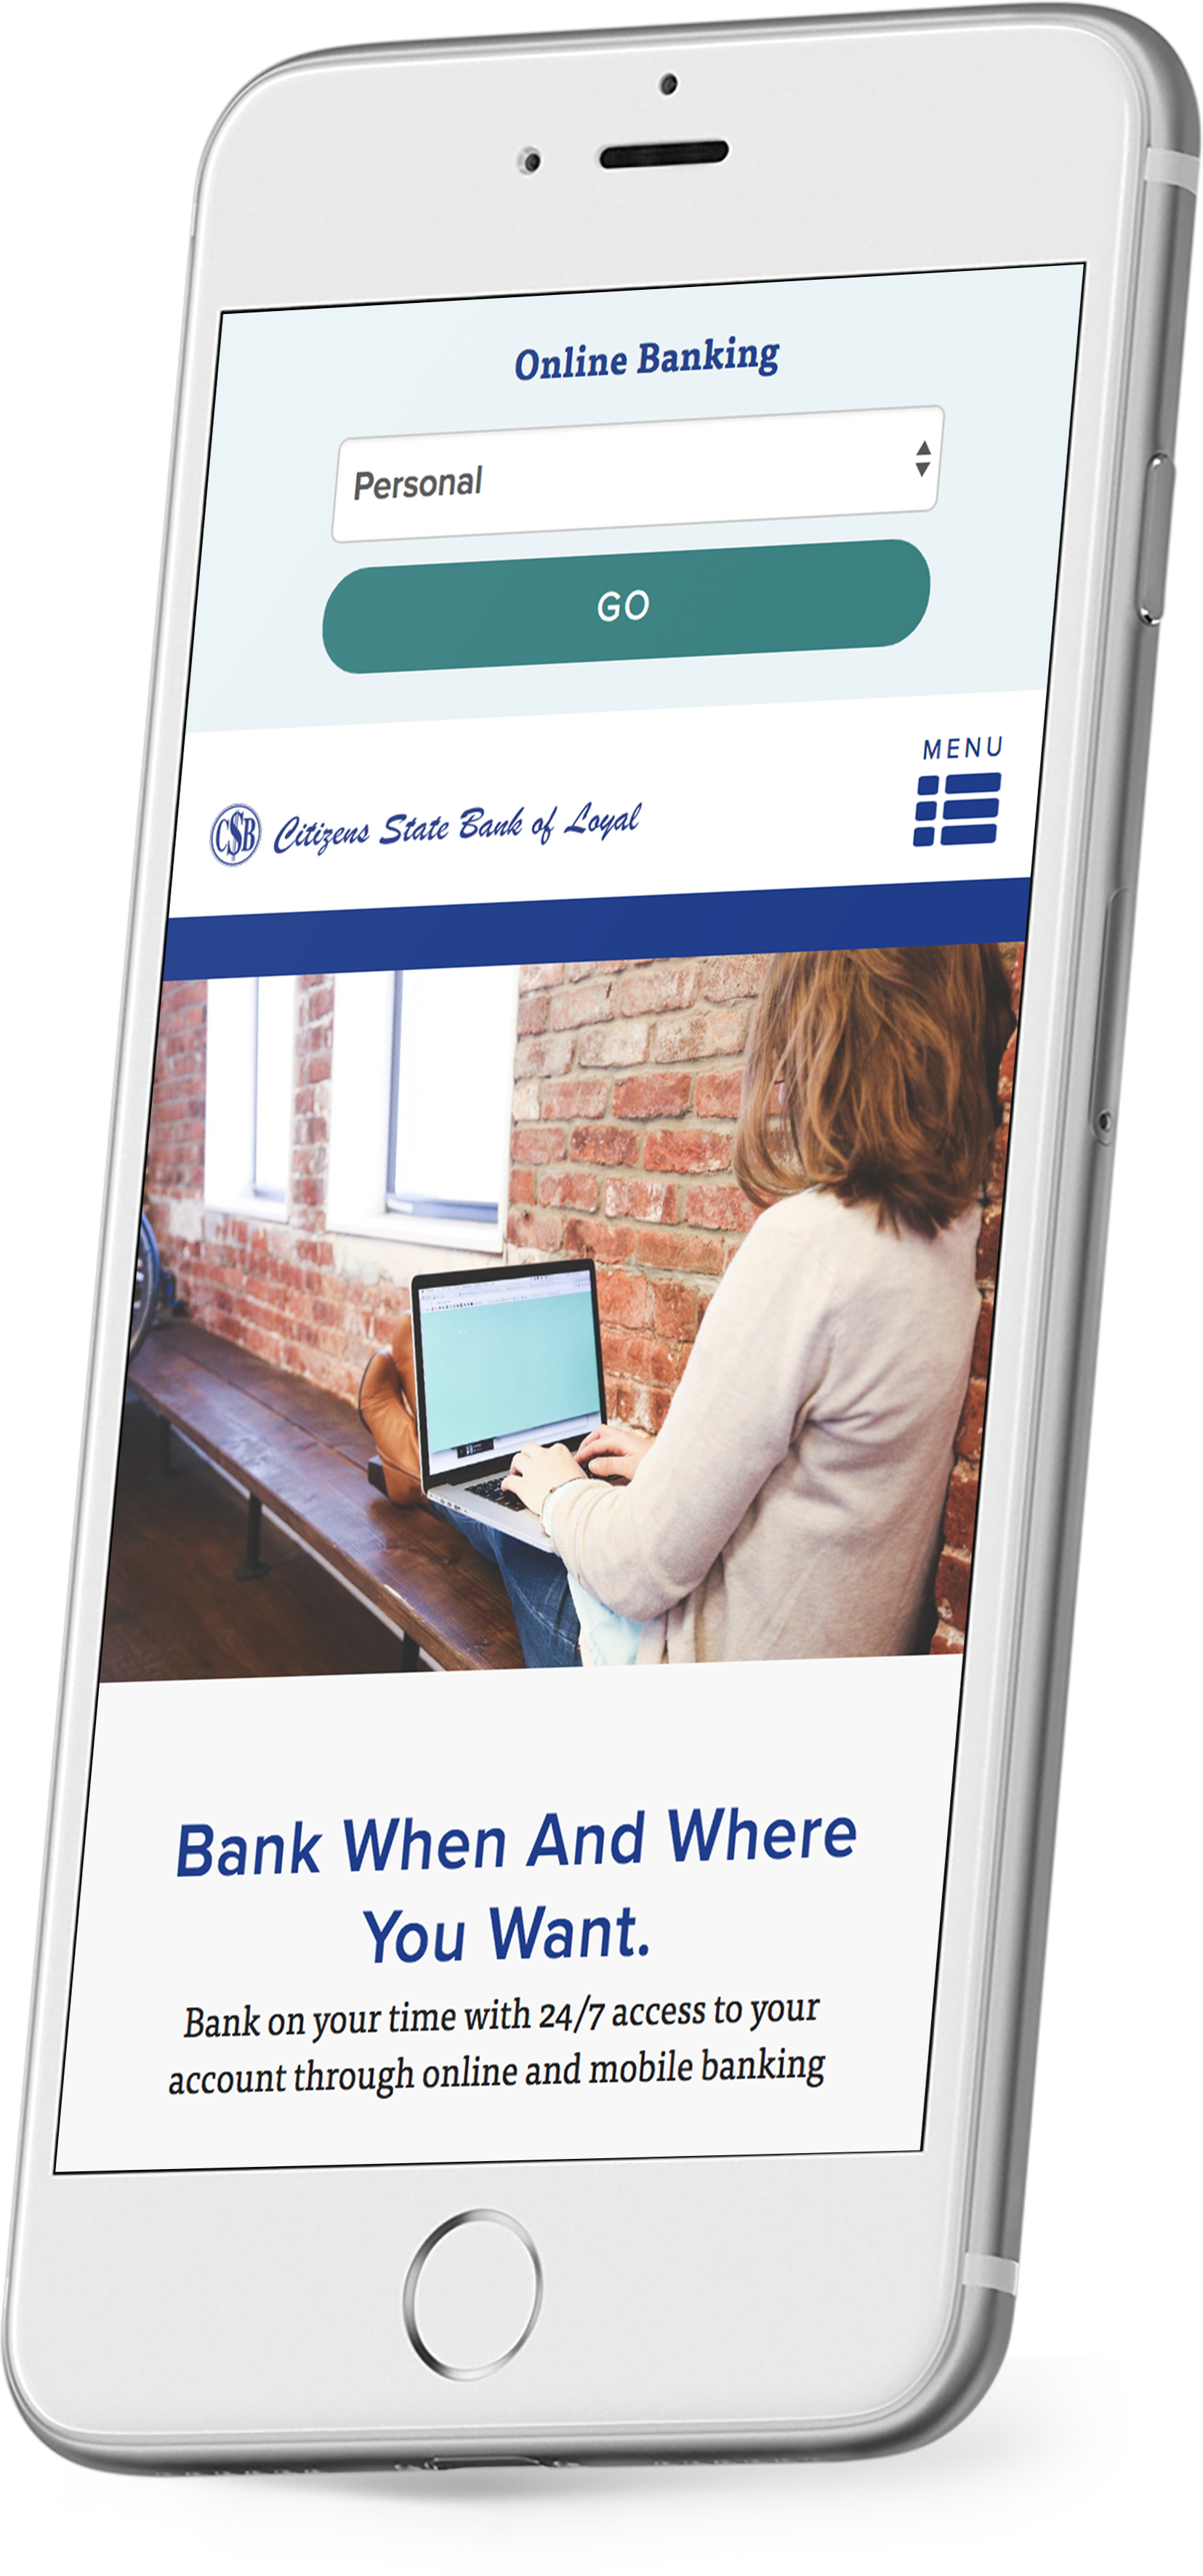 CSB Loyal's responsive bank website on a smartphone